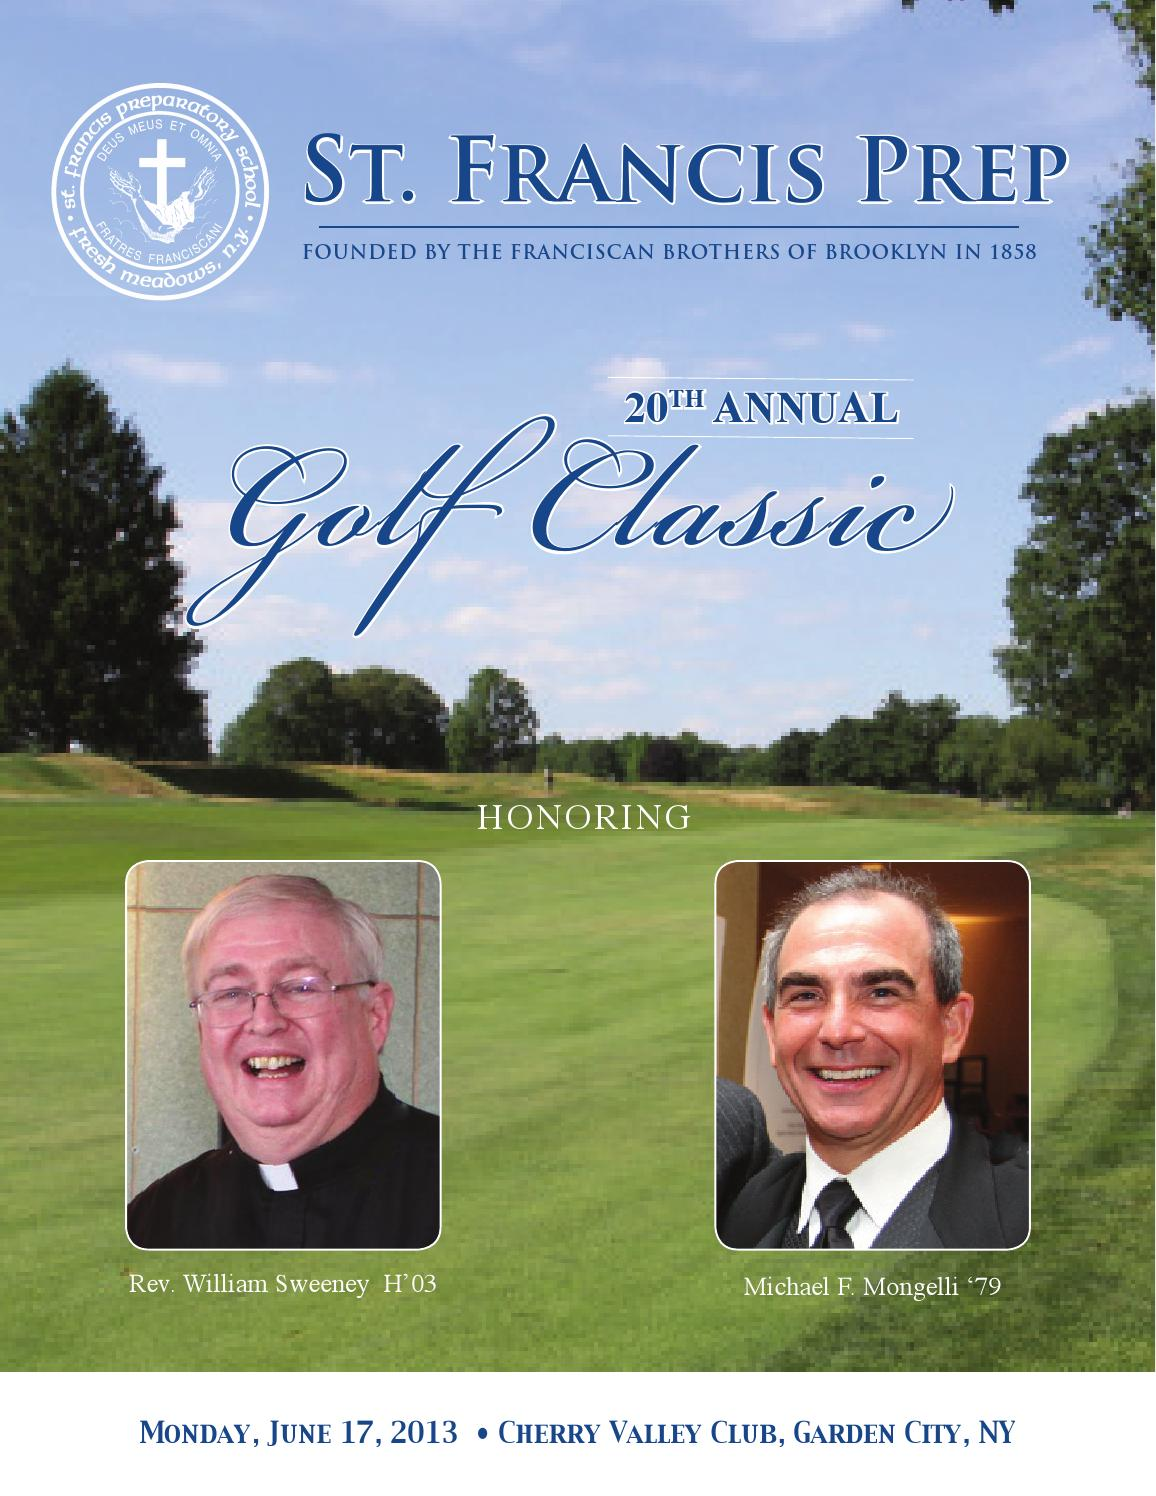 St Francis Prep 39 S 20th Annual Golf Classic Journal 2013 By St Francis Preparatory School Issuu